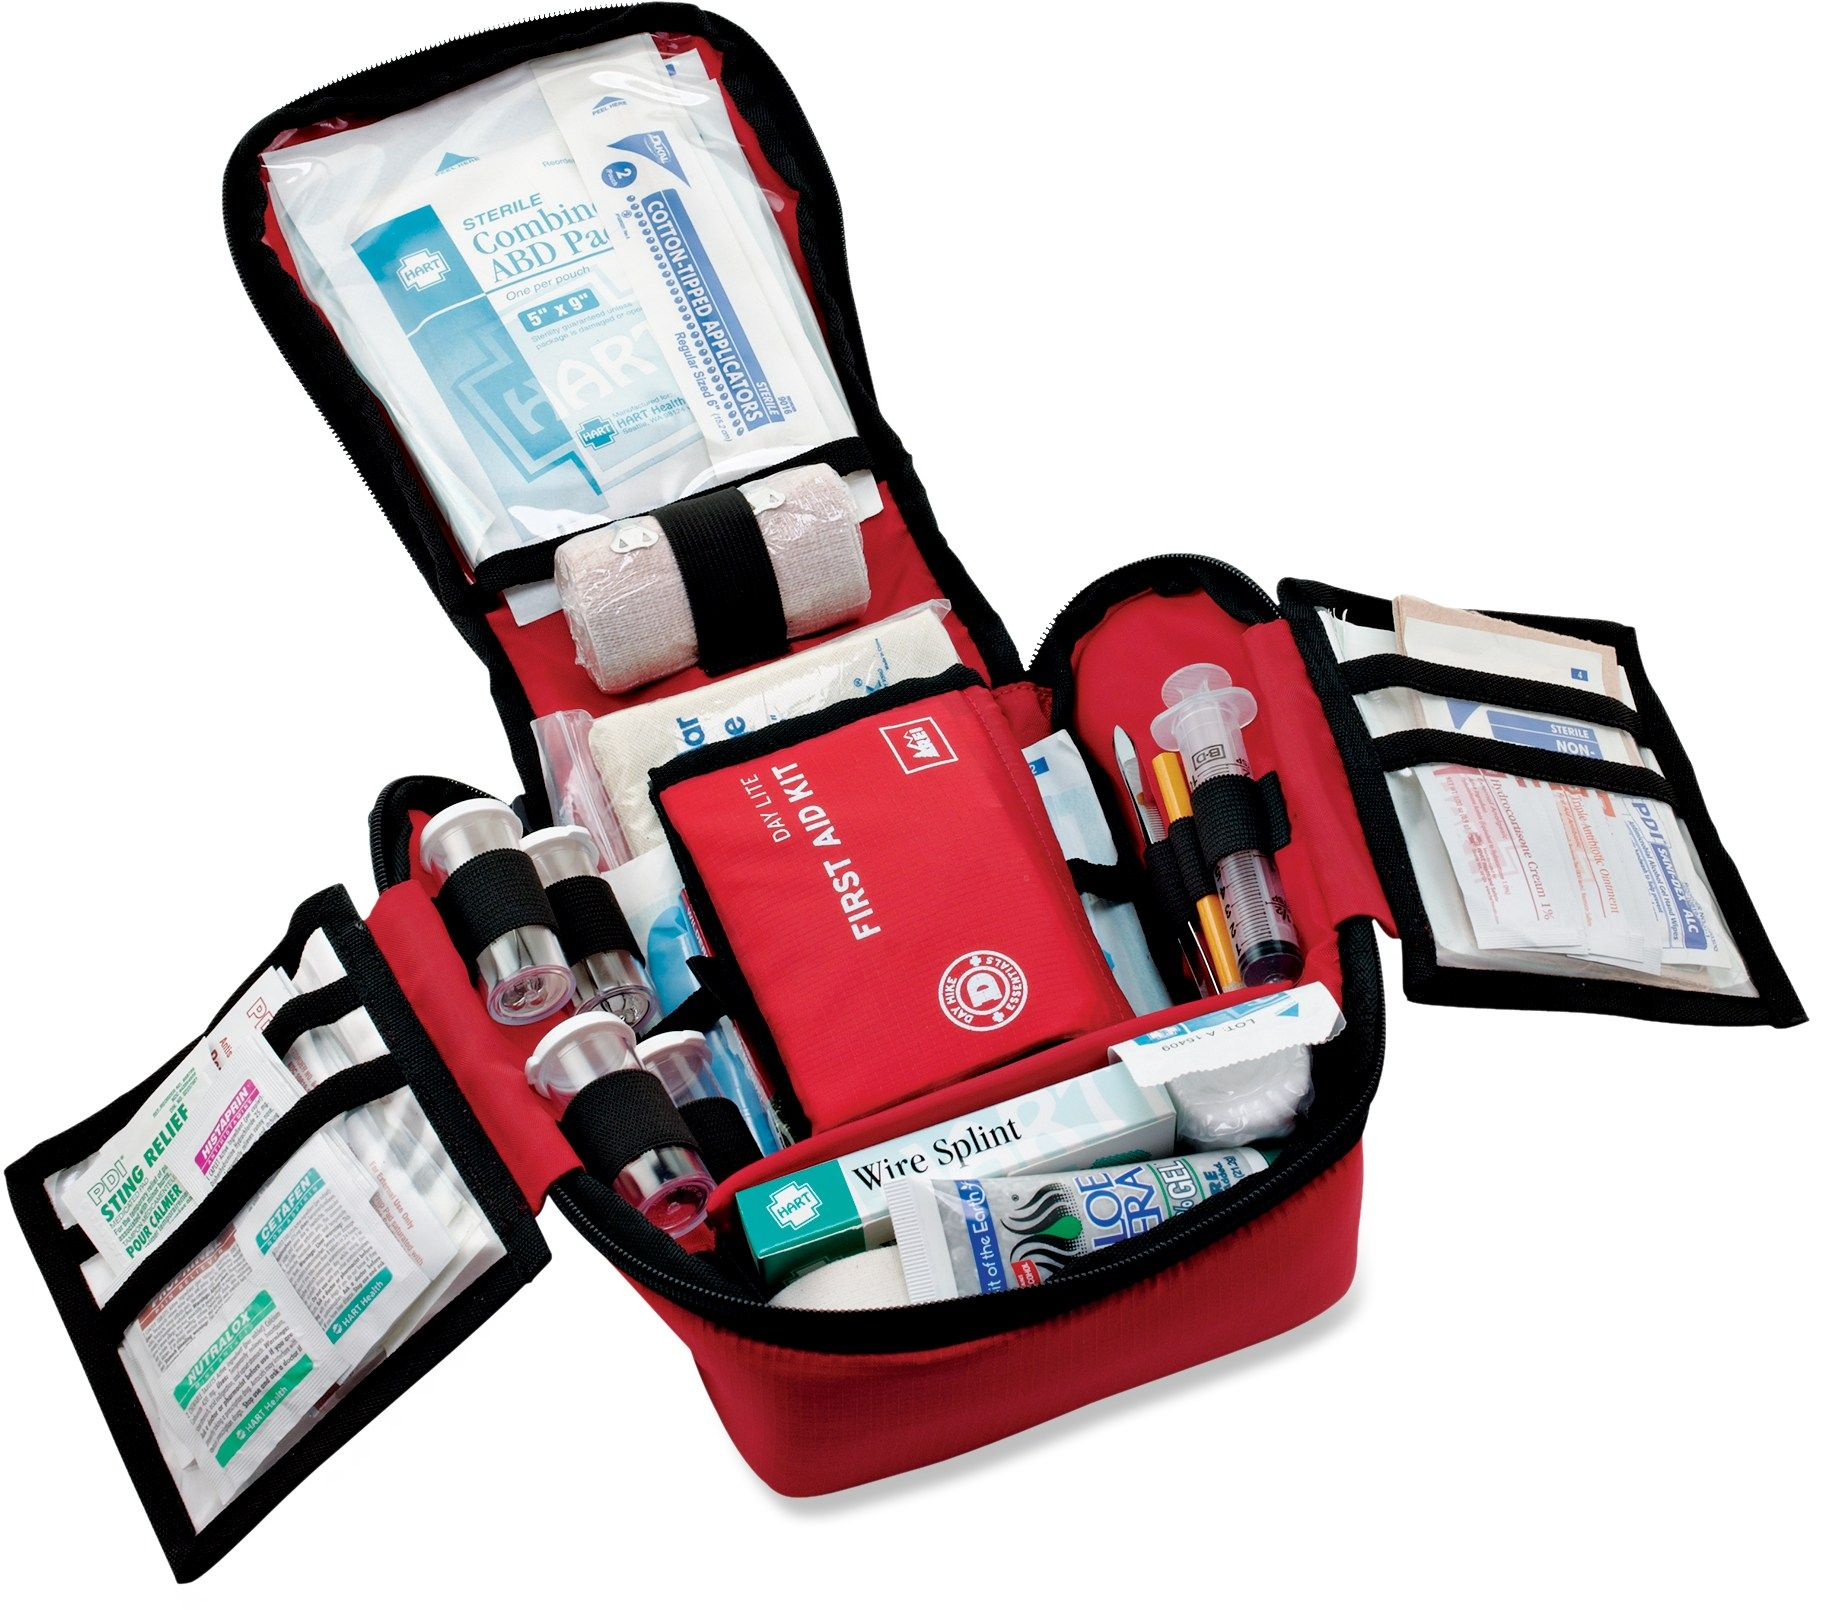 rei backpacker plus extended firstaid kit quantity add to cart find in store